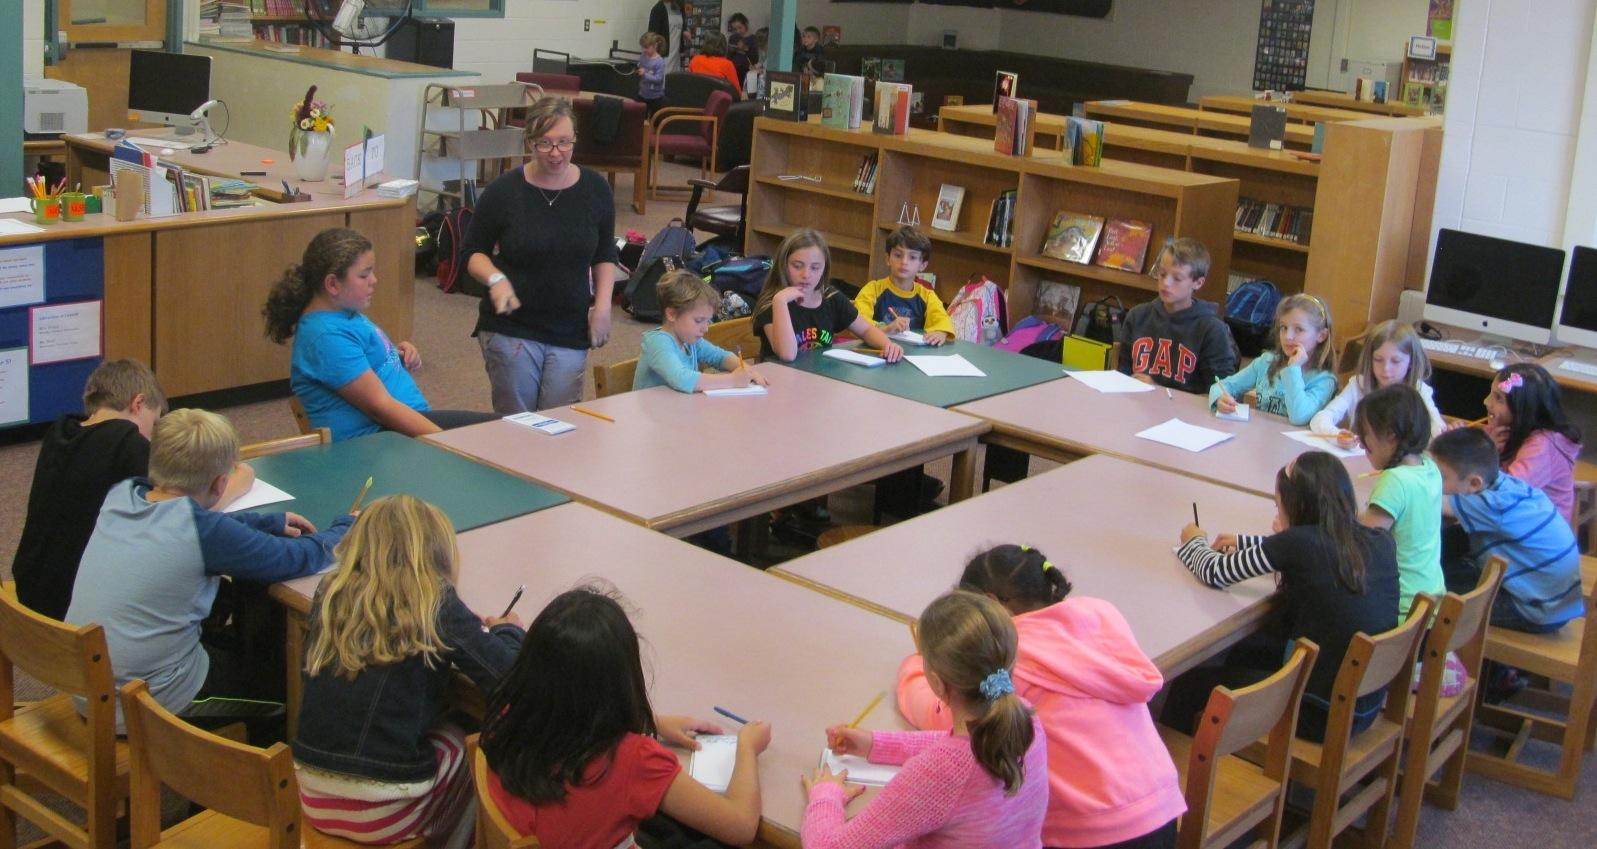 Jaclyn Meyer (standing left), the new art teacher at Cunniff Elementary in  Watertown